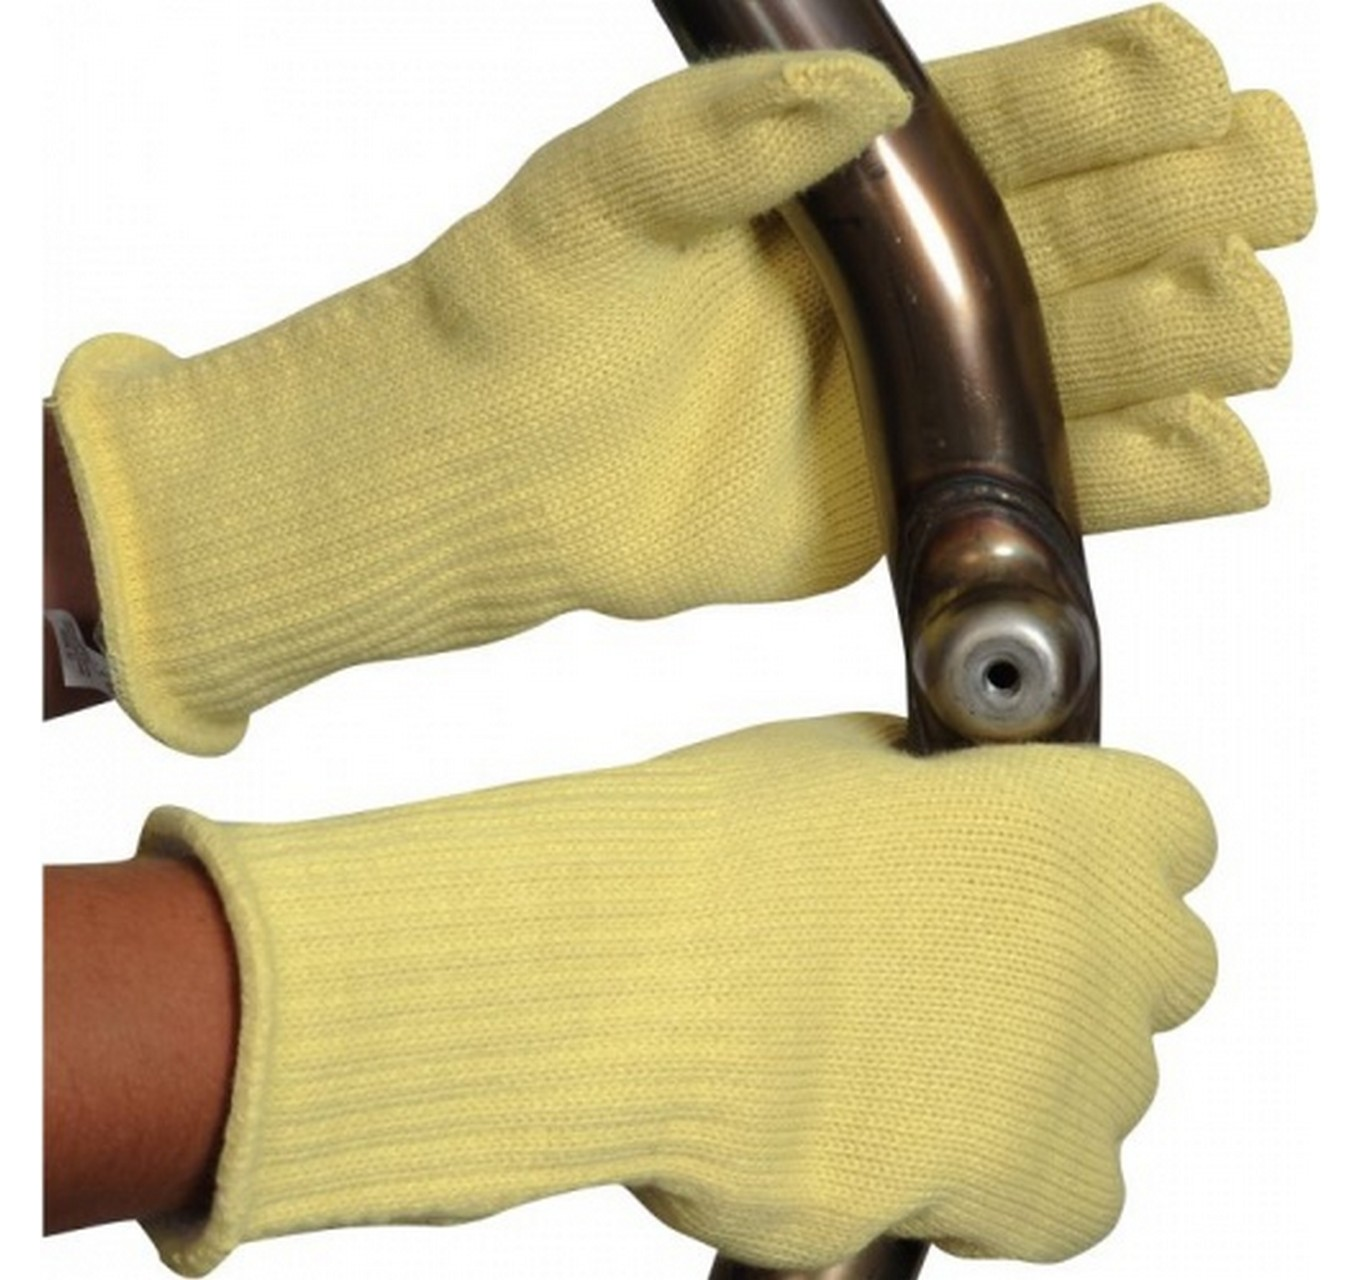 Heat Resistant Kevlar Gloves